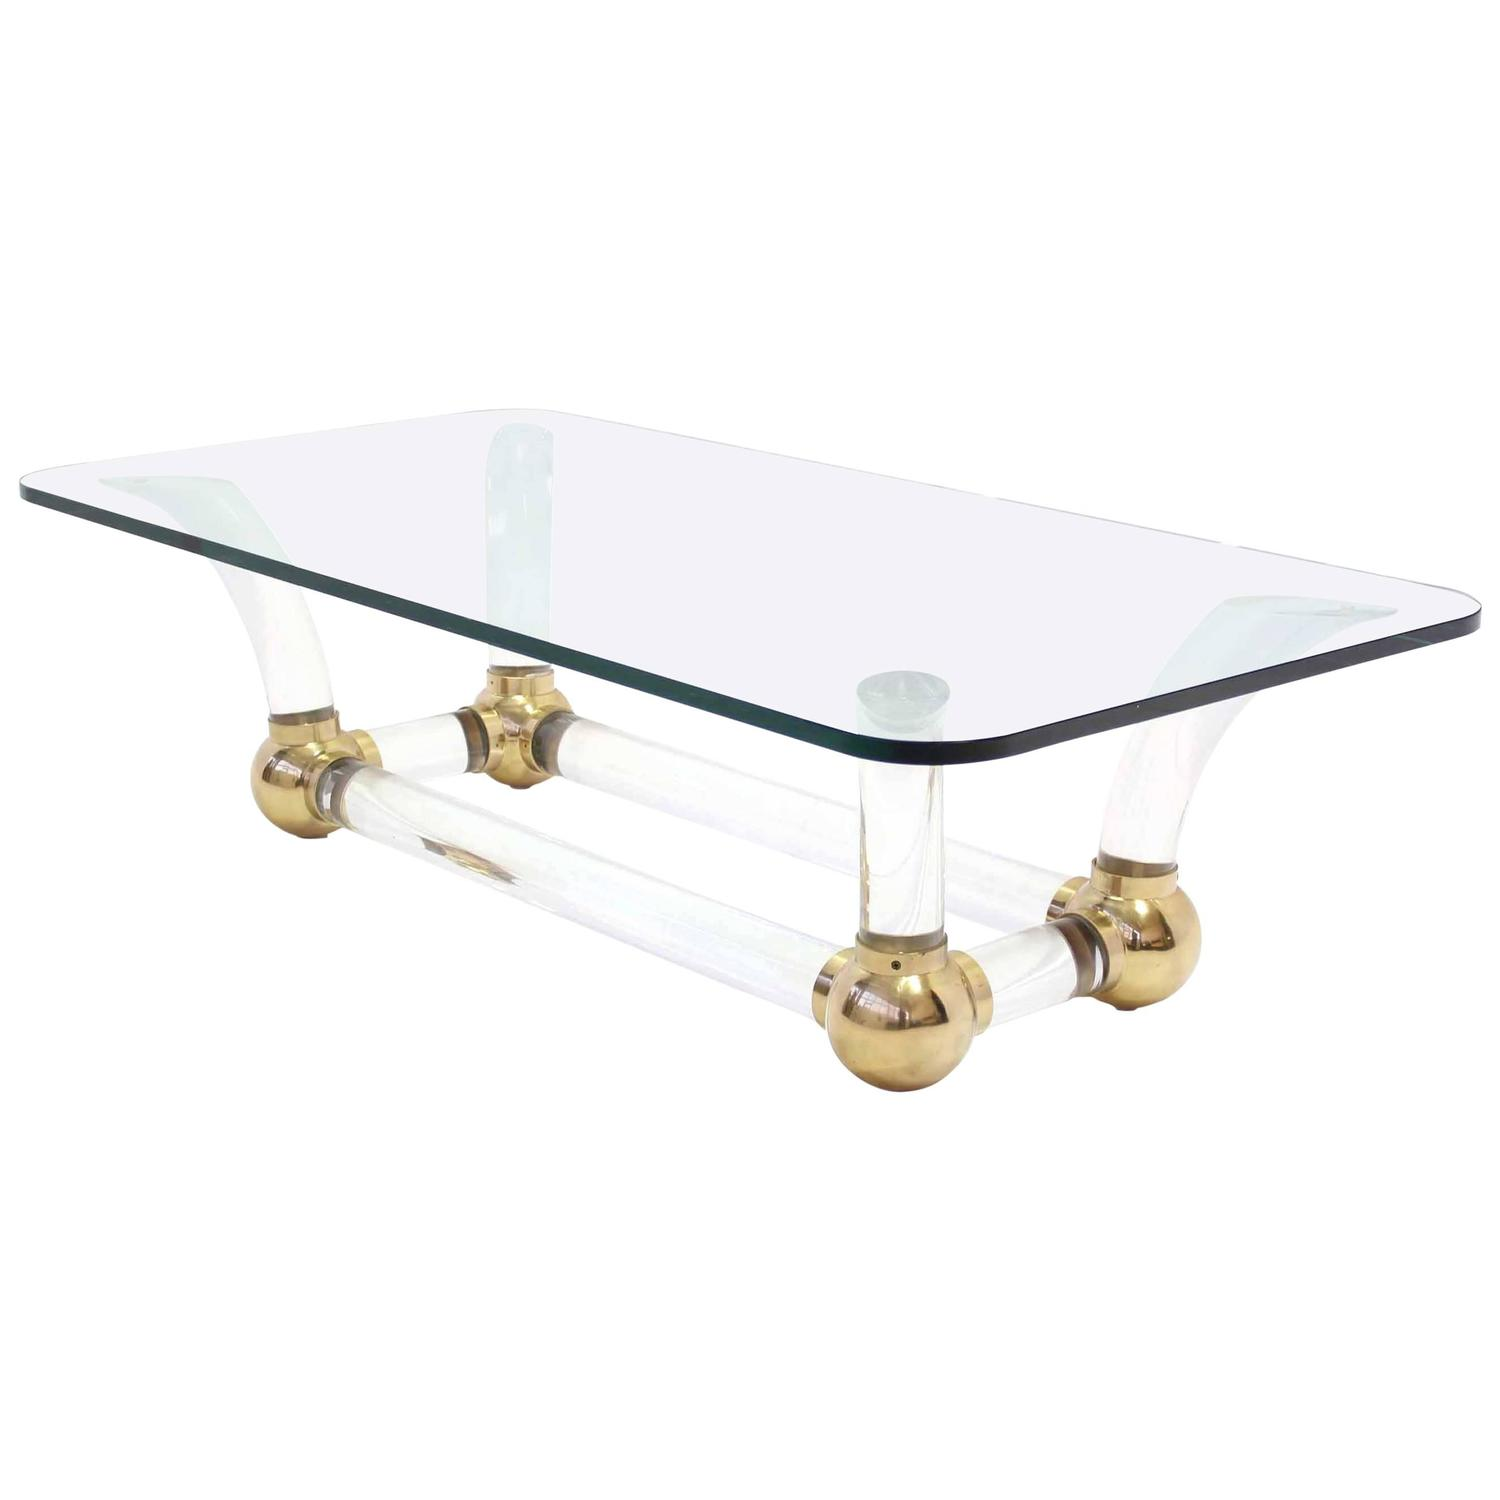 Heavy lucite and brass base thick glass top coffee table for Heavy glass coffee tables